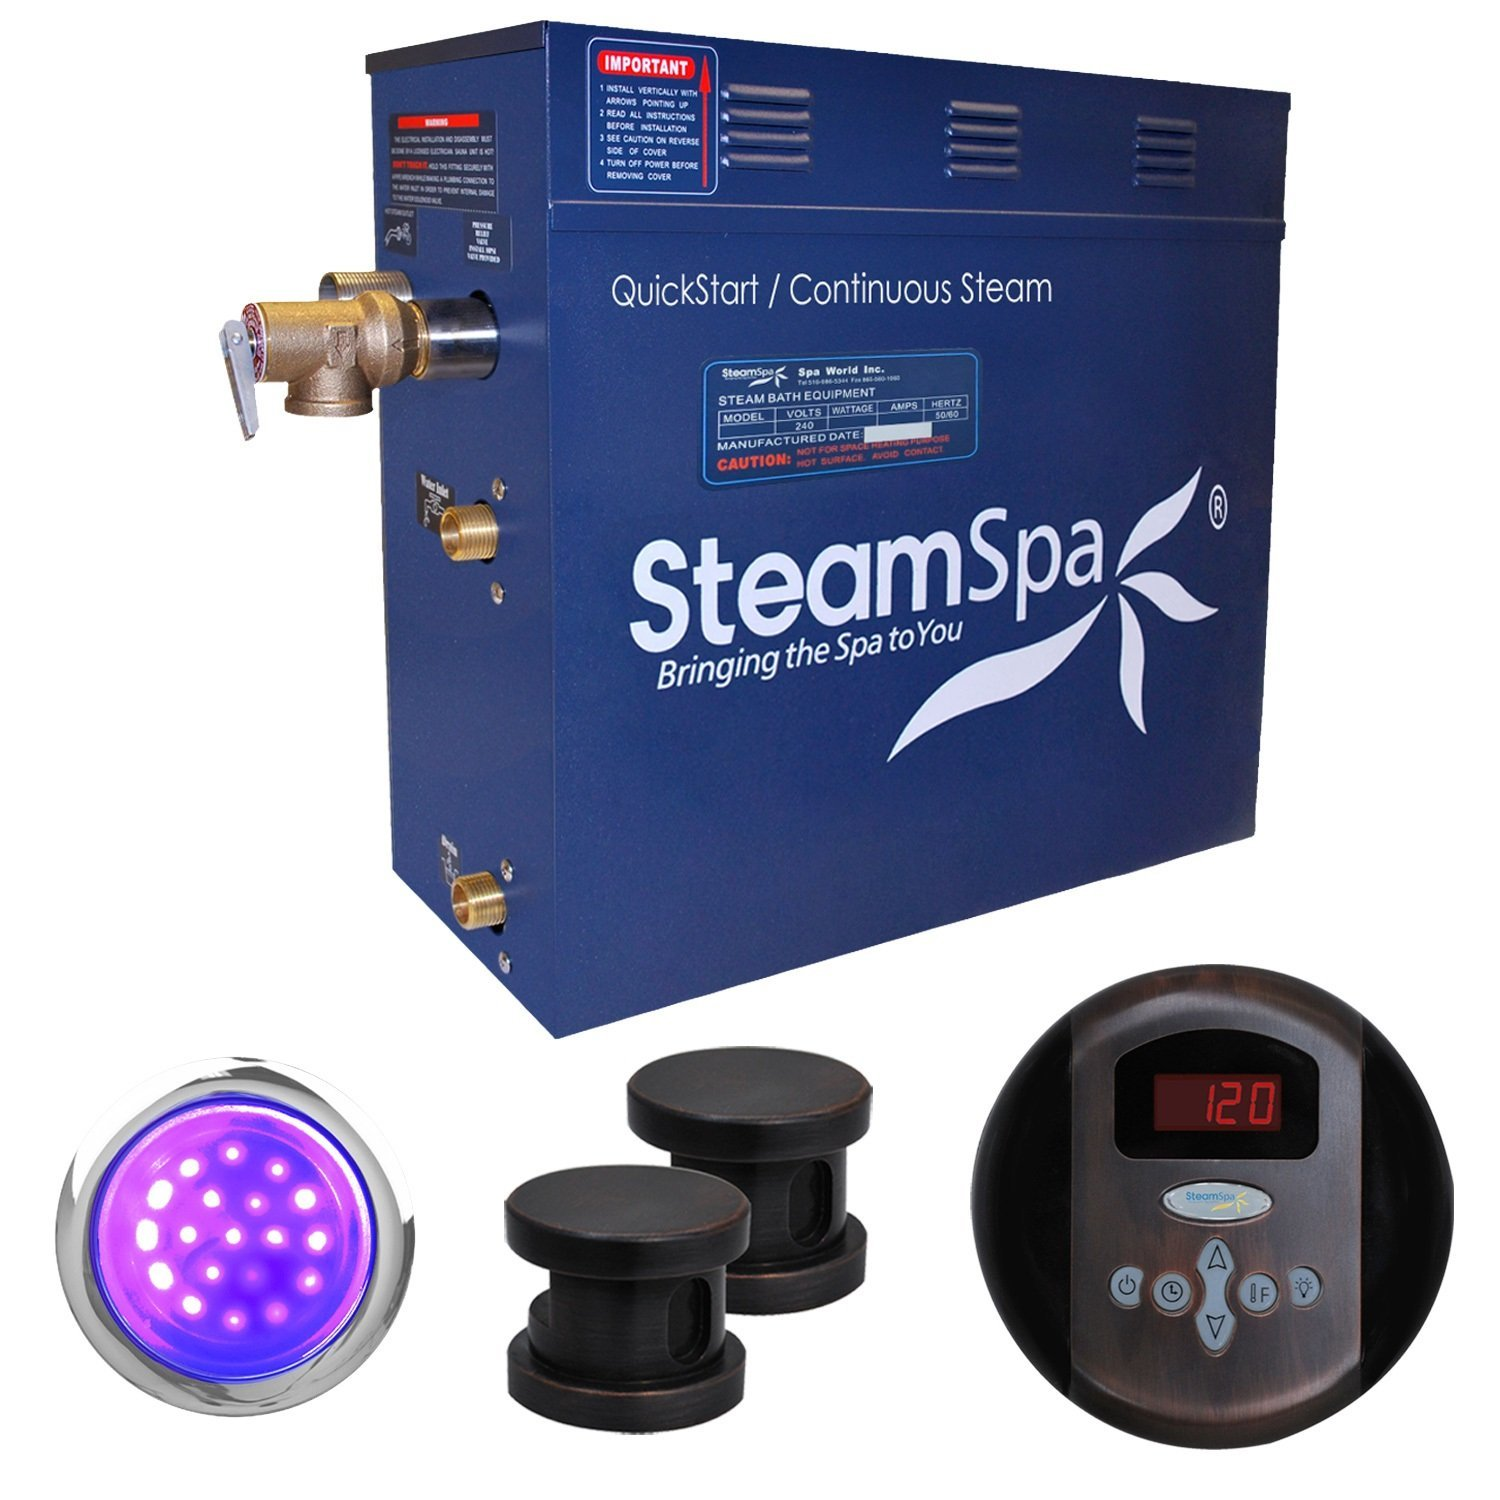 Steam Spa IN1200OB Indulgence 12 KW Quick Start Acu-Steam Bath Generator Package, Oil Rubbed Bronze